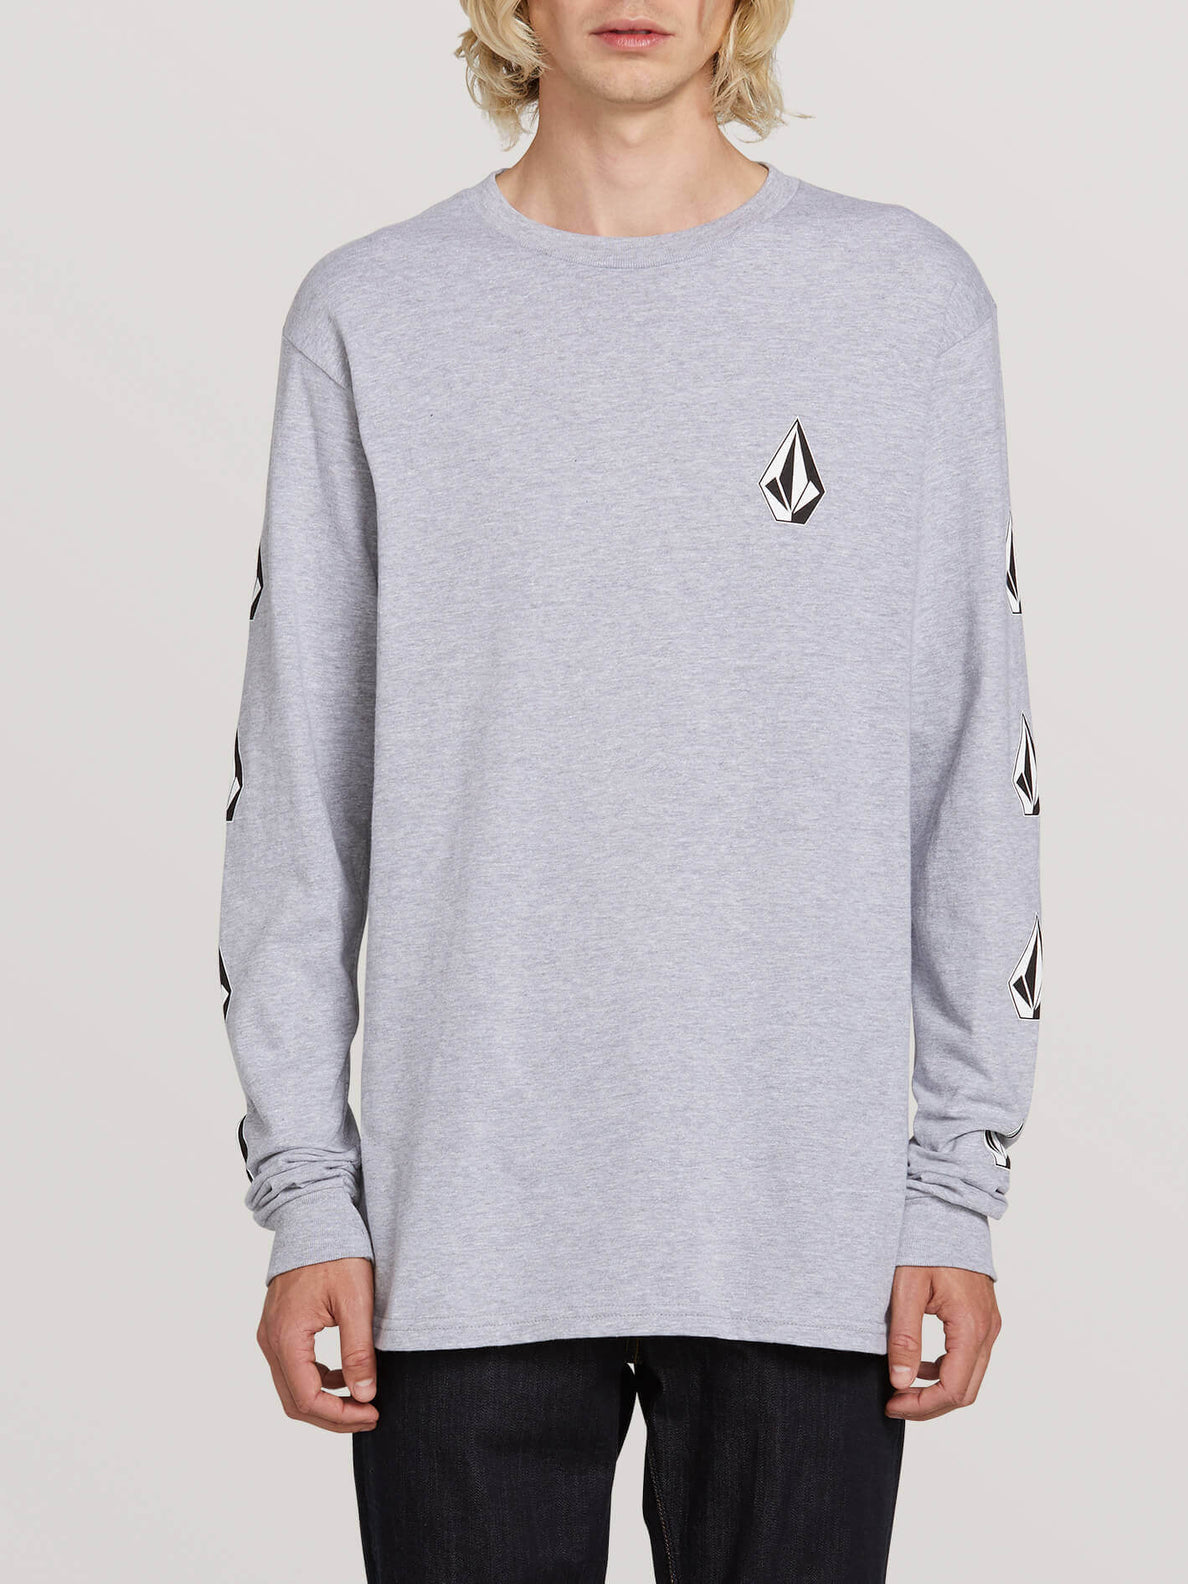 Deadly Stones Long Sleeve Tee - Grey (A3631702_GRY) [F]